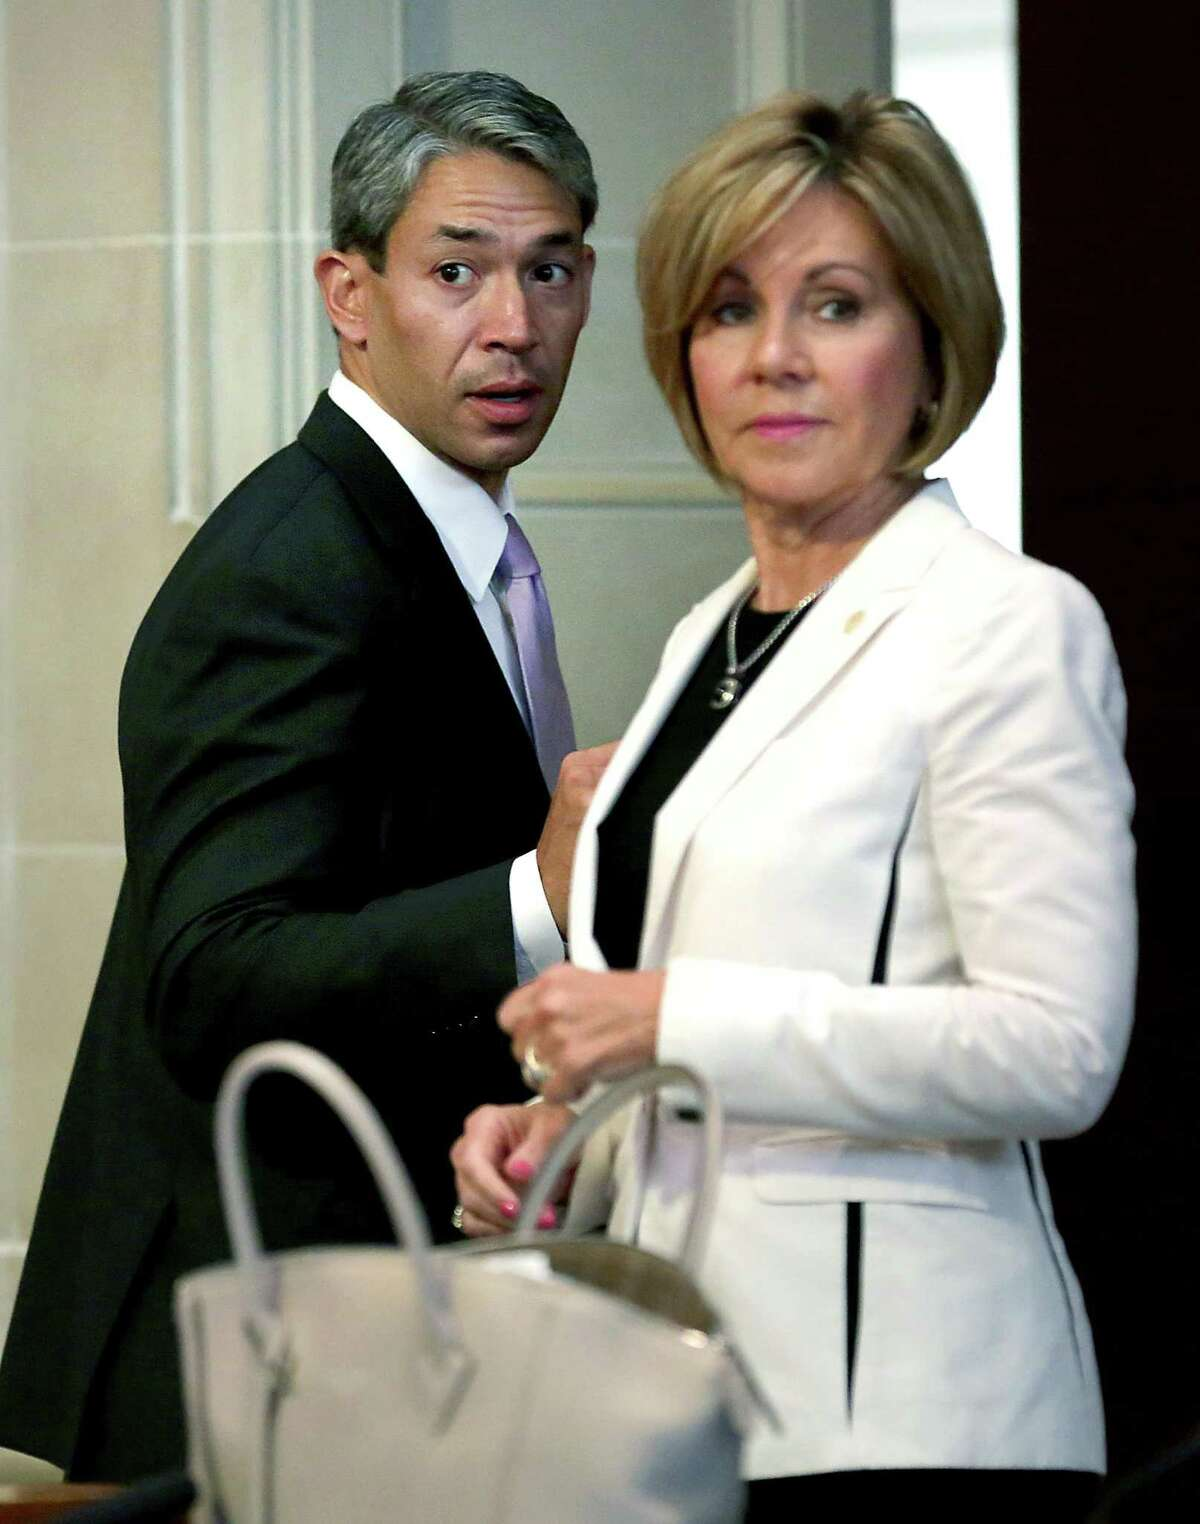 Mayor elect Ron Nirenberg, left, chats with City Manager Sheryl Sculley at the end of his last council meeting as a councilman, in the Municipal Complex on Thursday June 15, 2017.